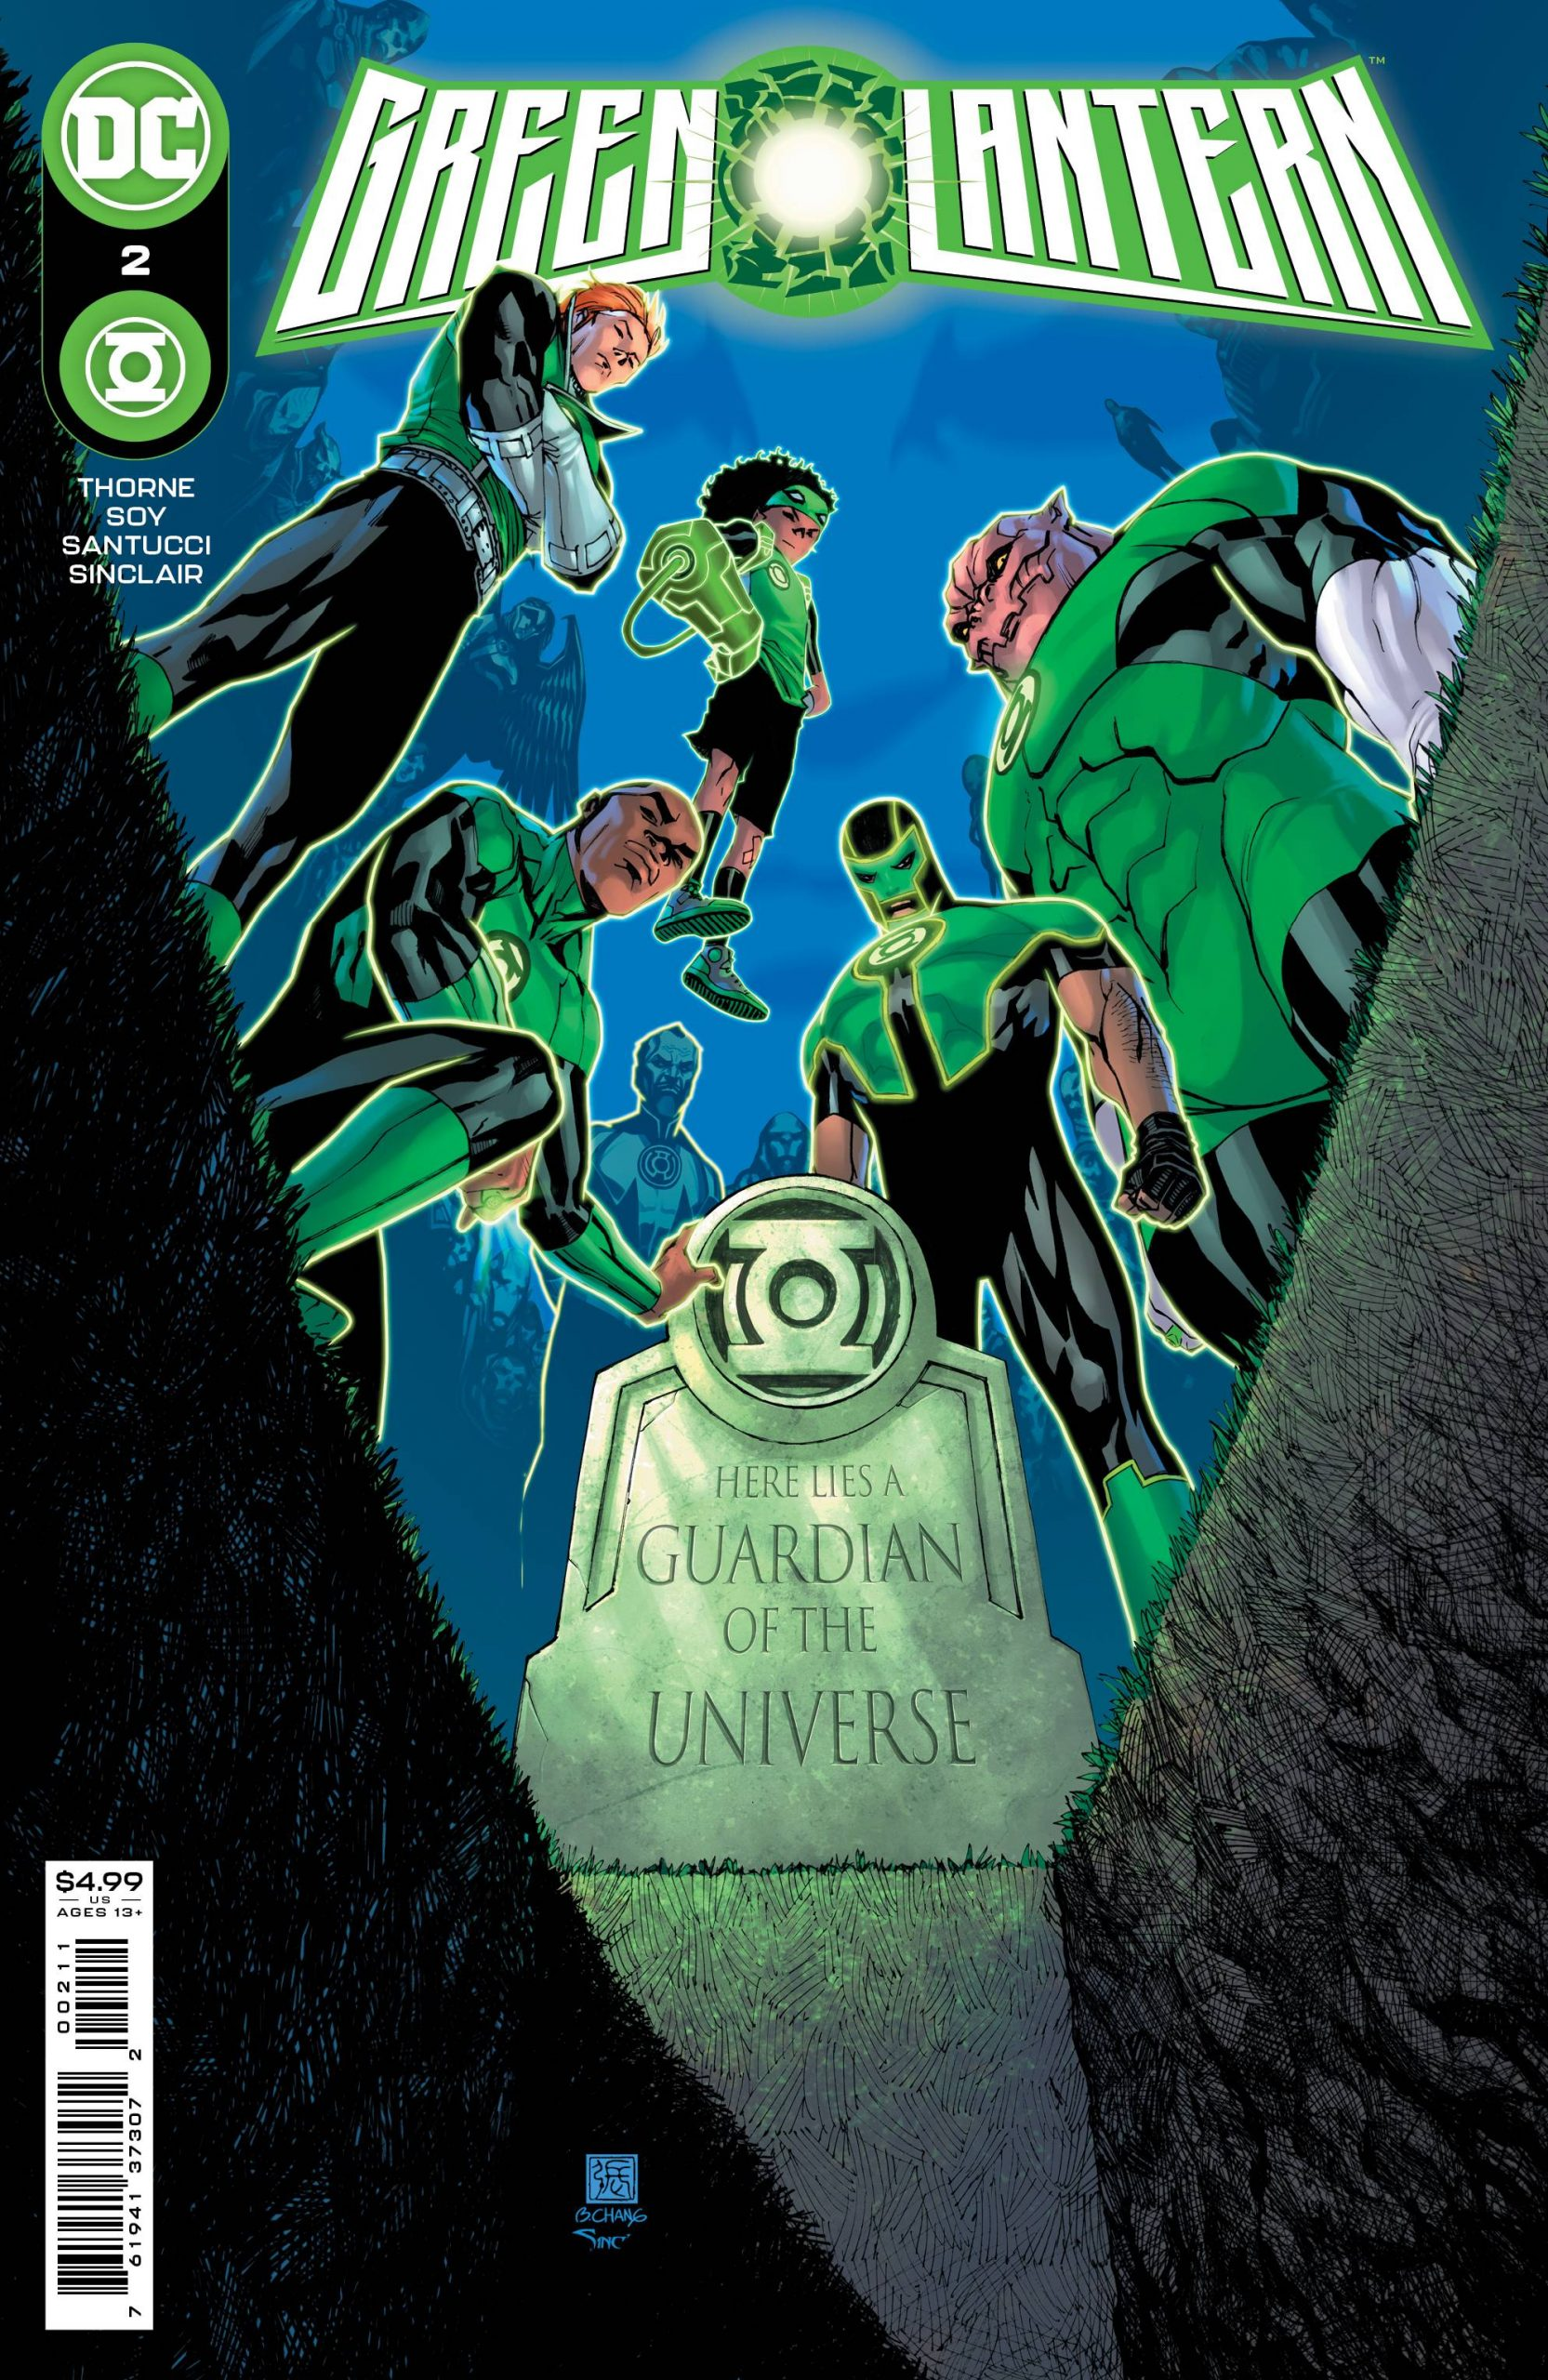 Green-Lantern-2-spoilers-0-1-scaled-1 Green-Lantern-2-spoilers-0-1-scaled-1